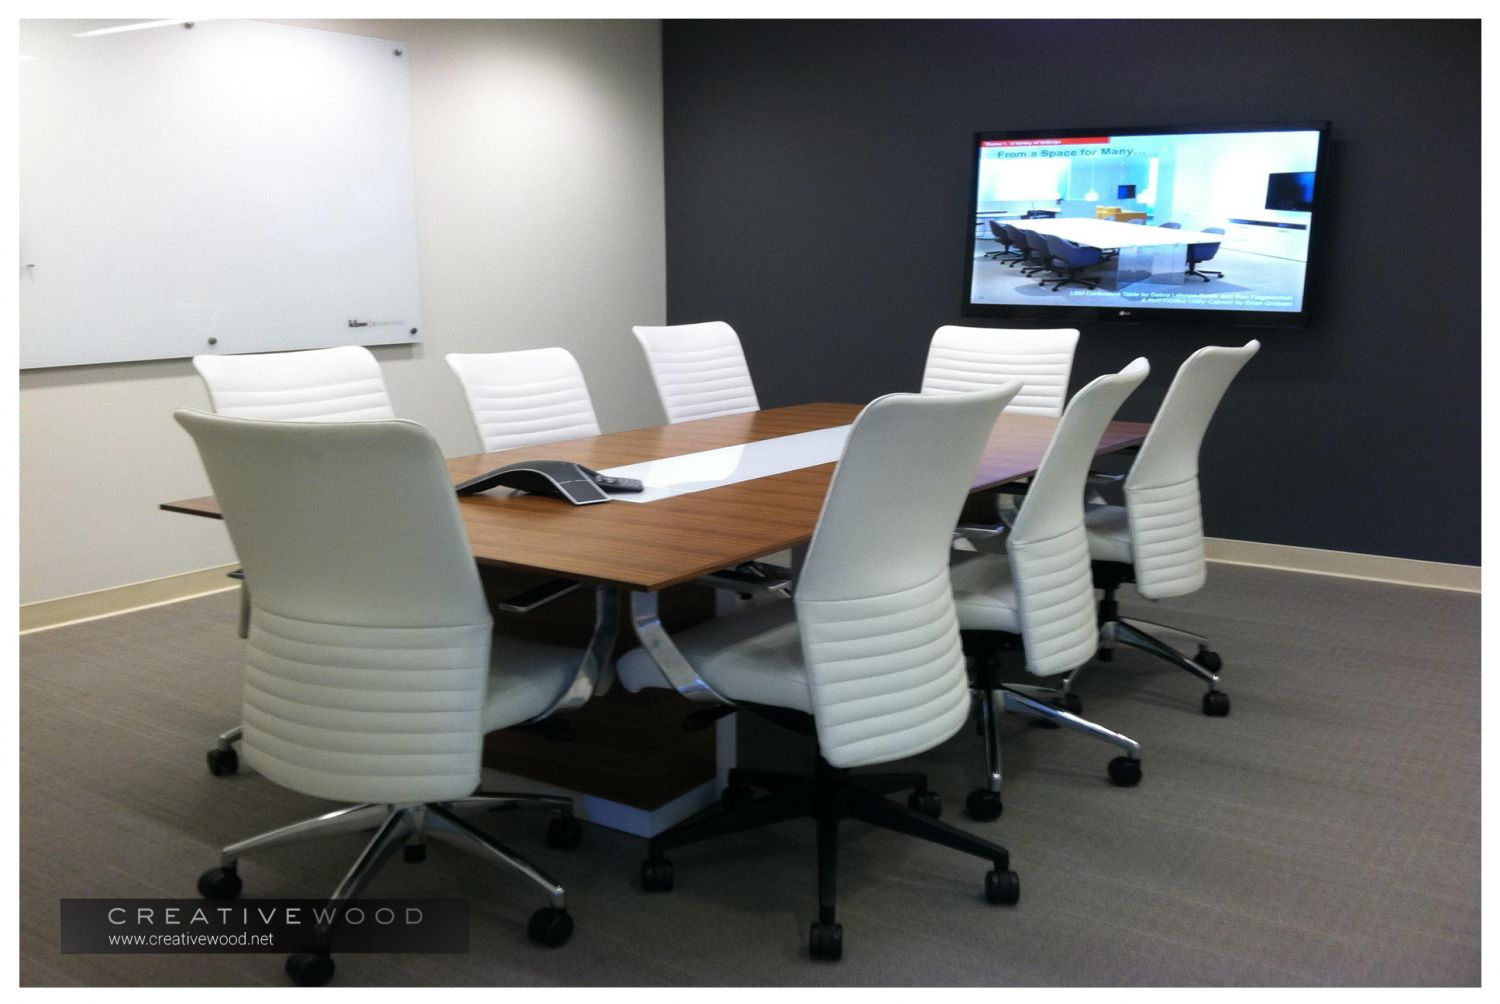 conference tables custom office furniture creative wood - Conference Table Chairs